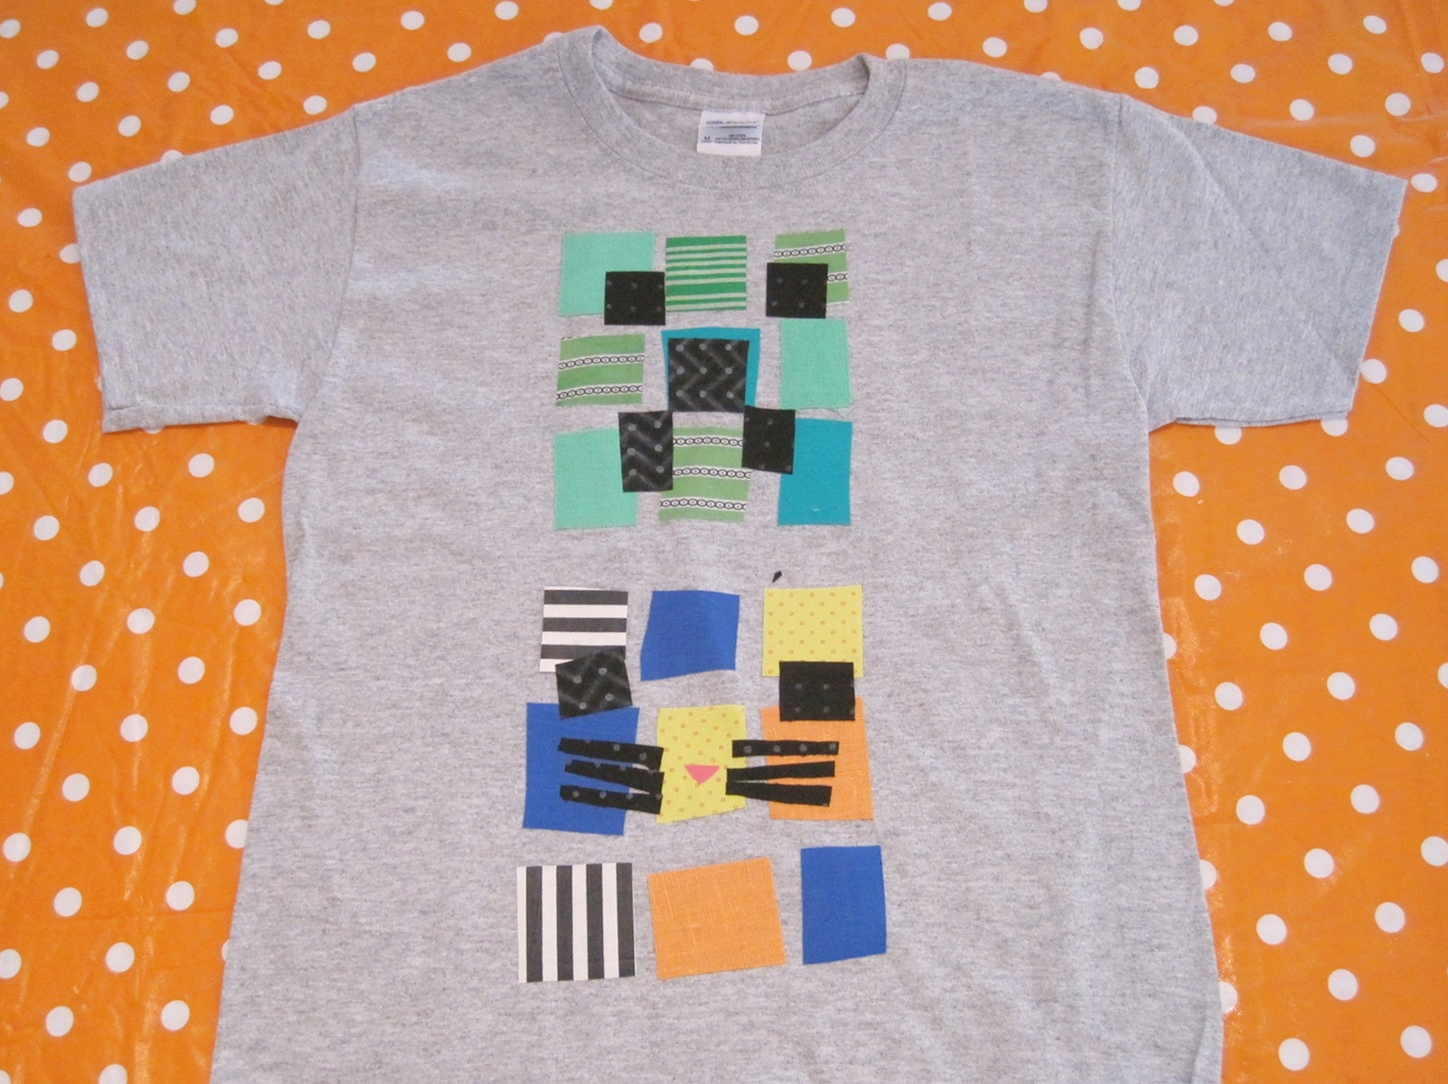 Minecraft T-shirt - ages 6 and up - Design your own Minecraftt-shirt using